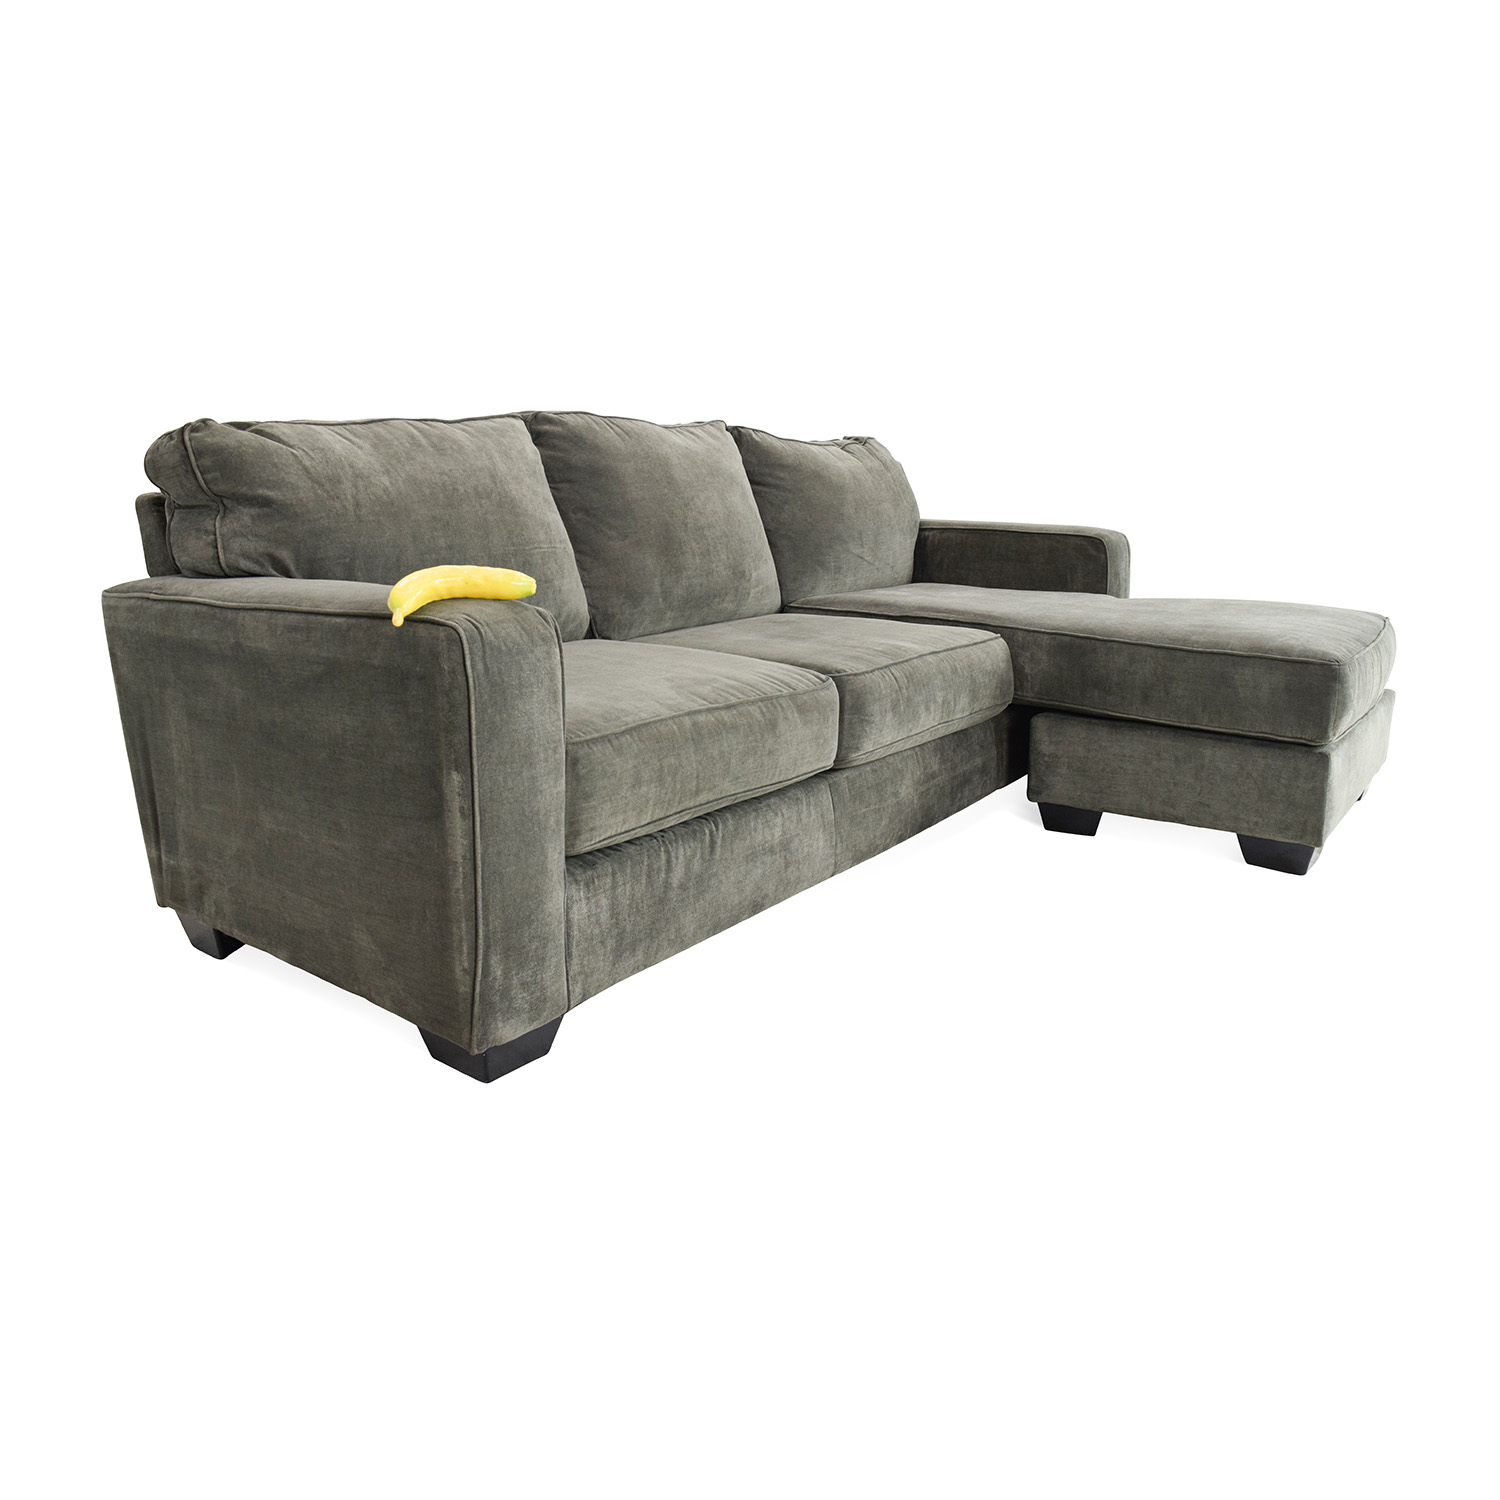 ... Jennifer Convertibles Sectional Sofa Jennifer Convertibles ...  sc 1 st  Furnishare : jennifer convertibles sectional sofas - Sectionals, Sofas & Couches